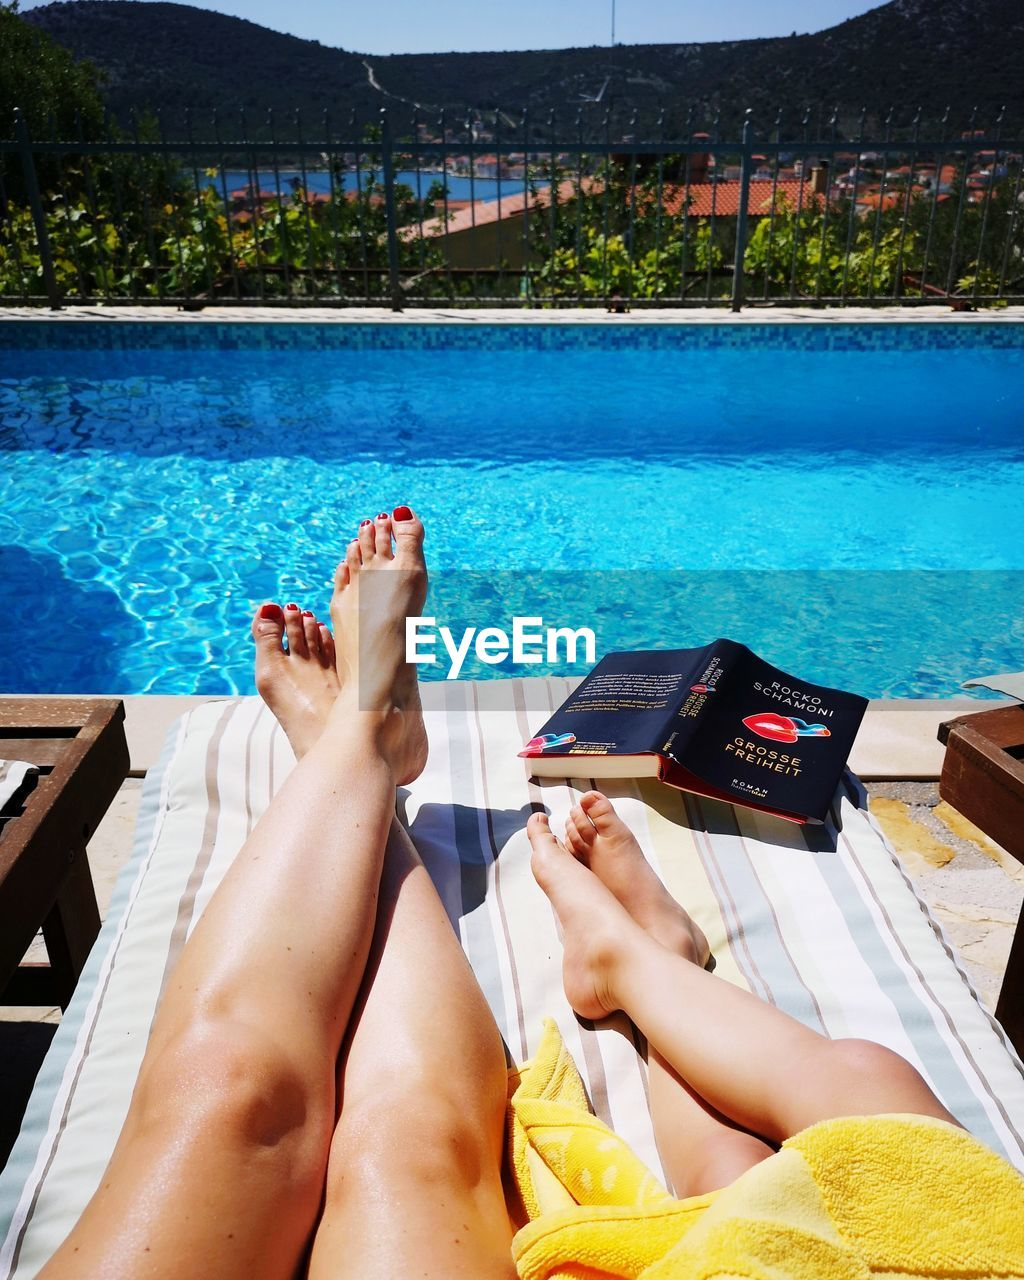 water, swimming pool, pool, low section, relaxation, barefoot, real people, human body part, leisure activity, human leg, lifestyles, one person, nature, adult, summer, lounge chair, poolside, women, day, body part, human foot, outdoors, nail